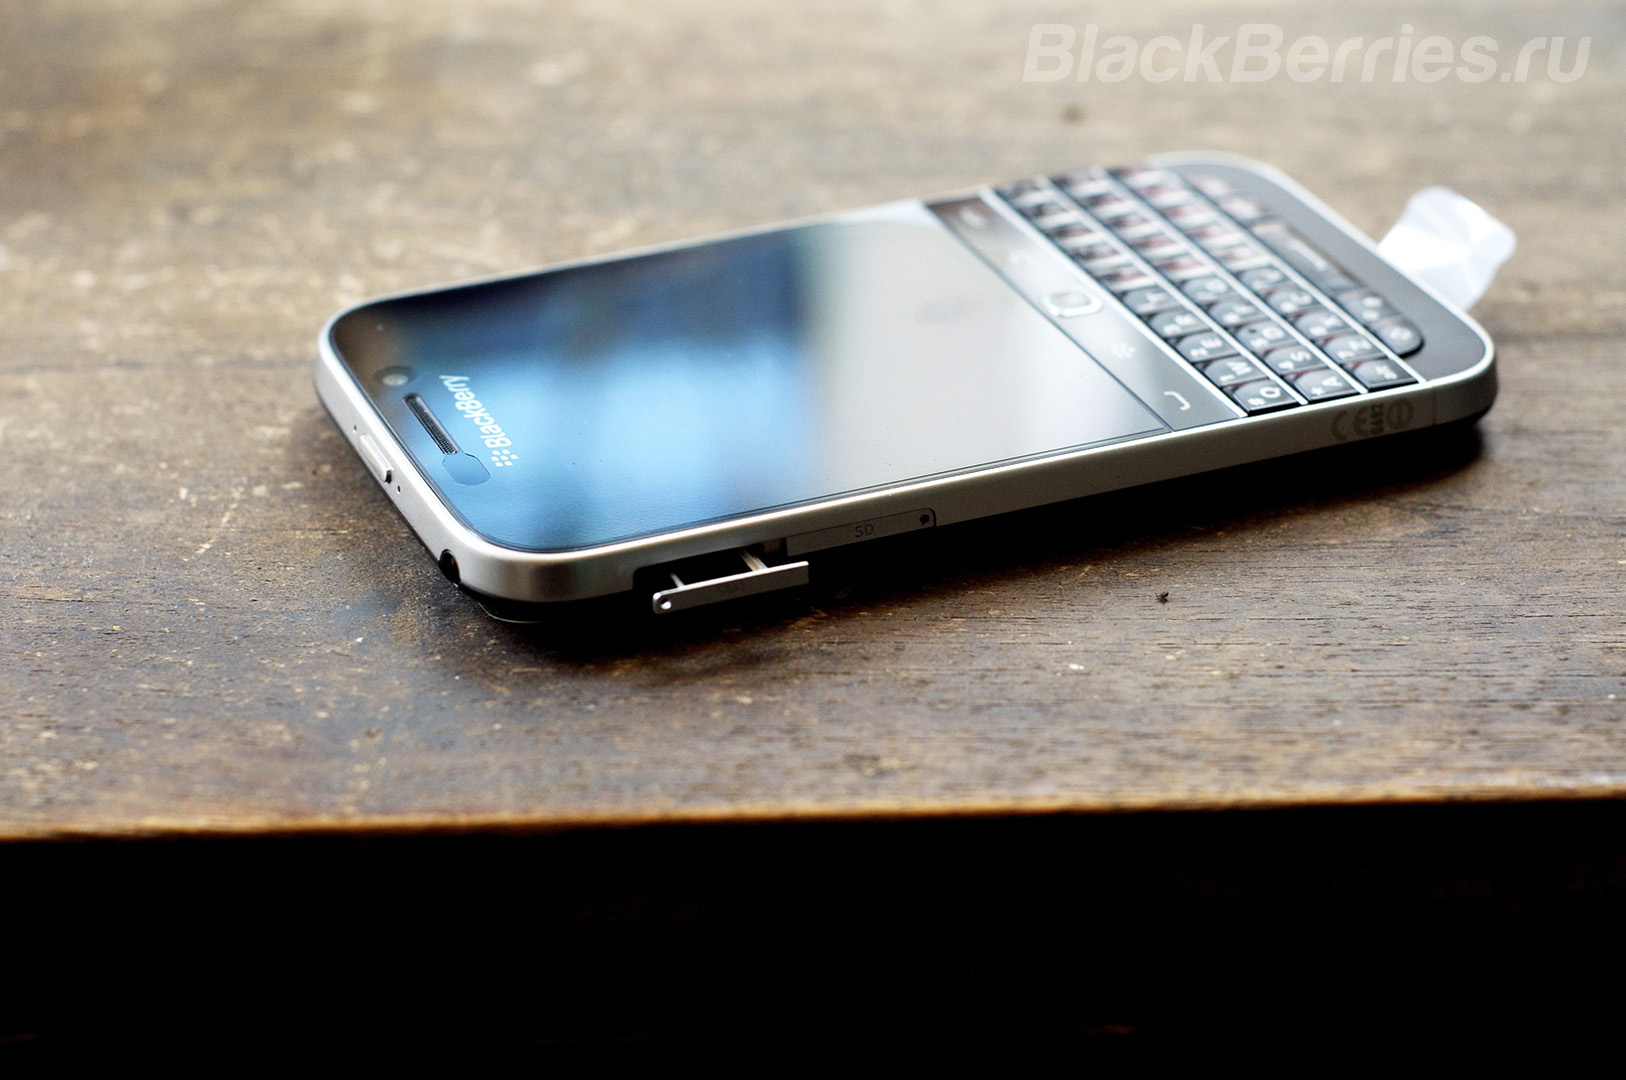 BlackBerry-Classic-2-Review-10